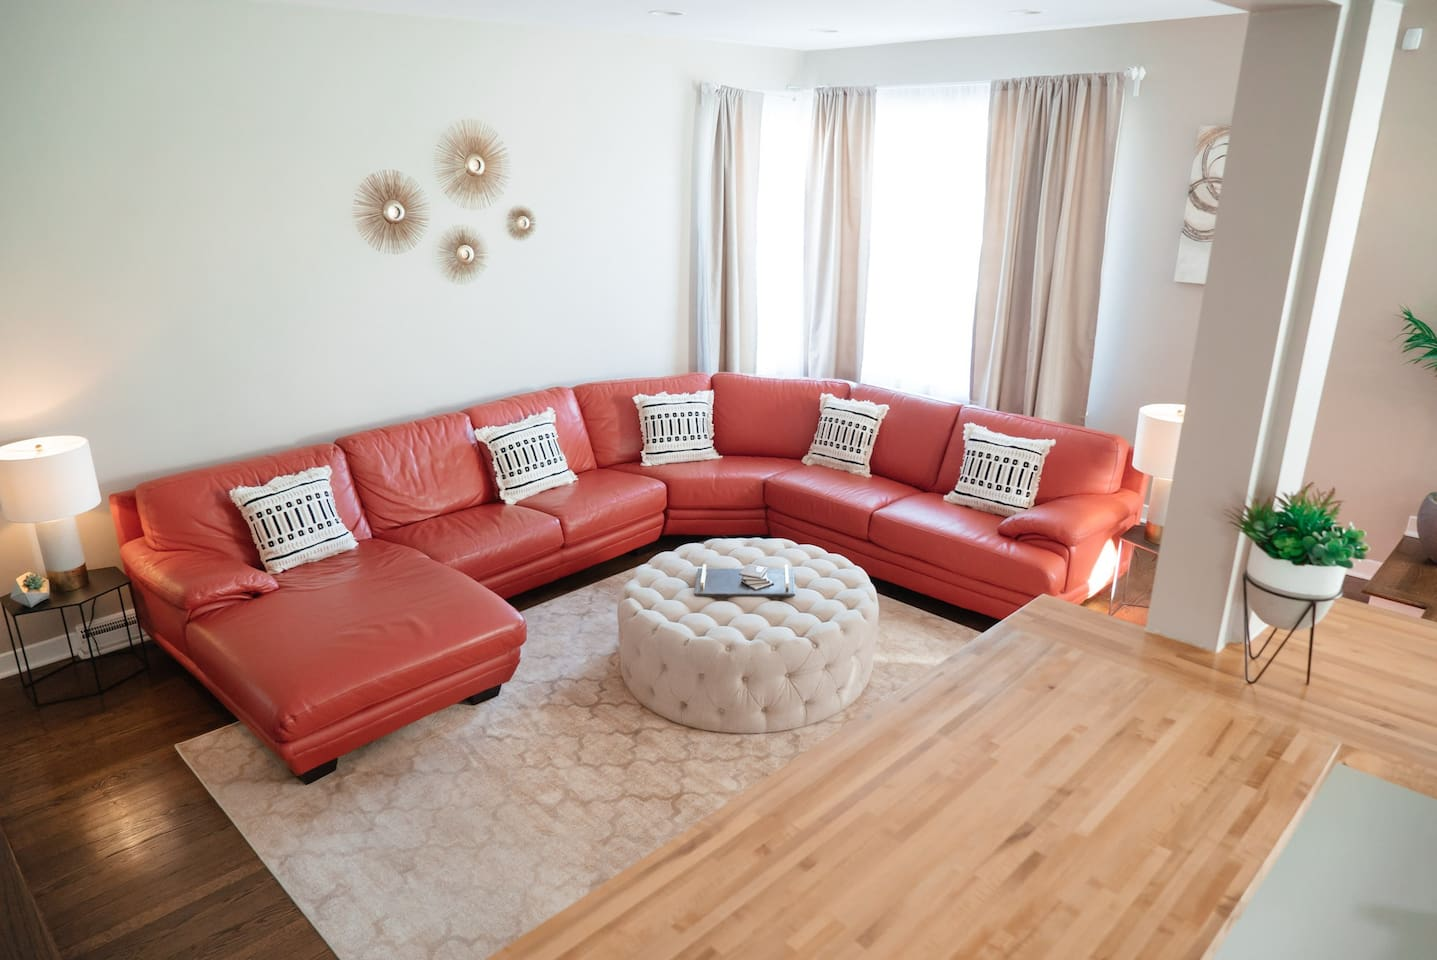 Whether putting your feet up after a long day or dozing off after a slice of deep-dish, our living room couch is the perfect place to relax